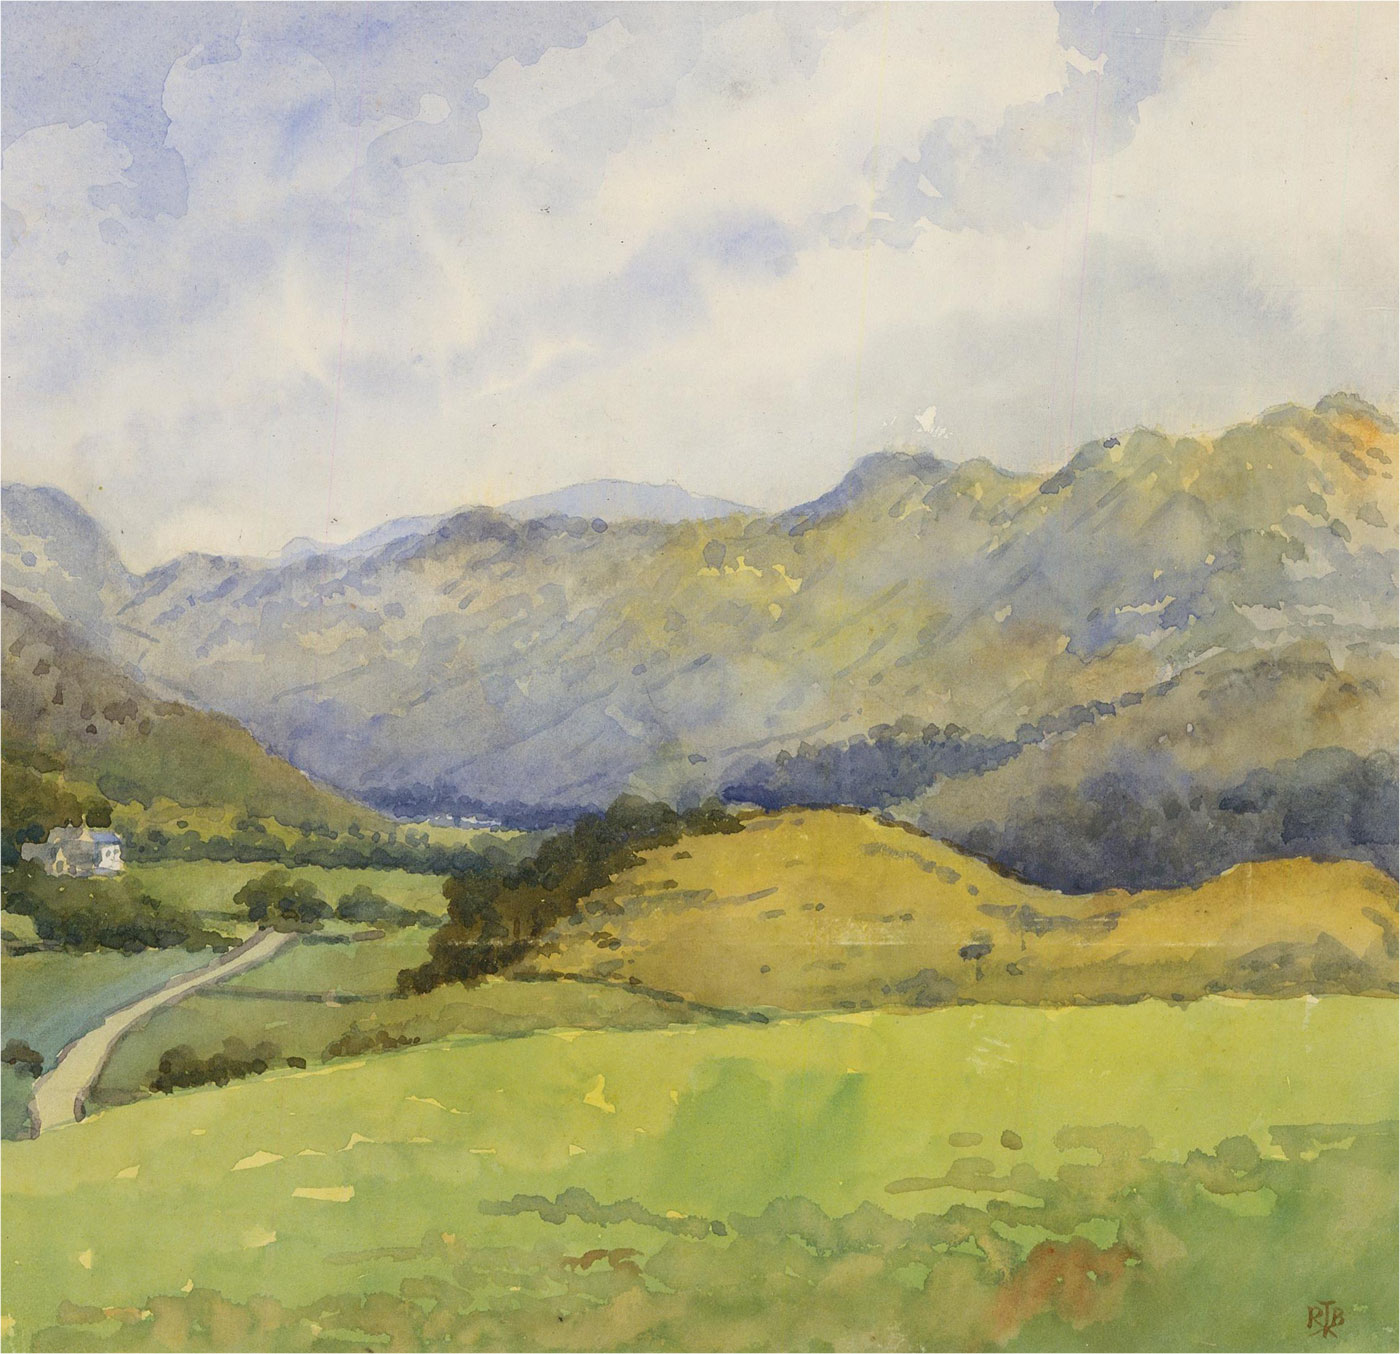 Raymond Turner Barker (1872-1945) - Early 20th Century Watercolour, Valley